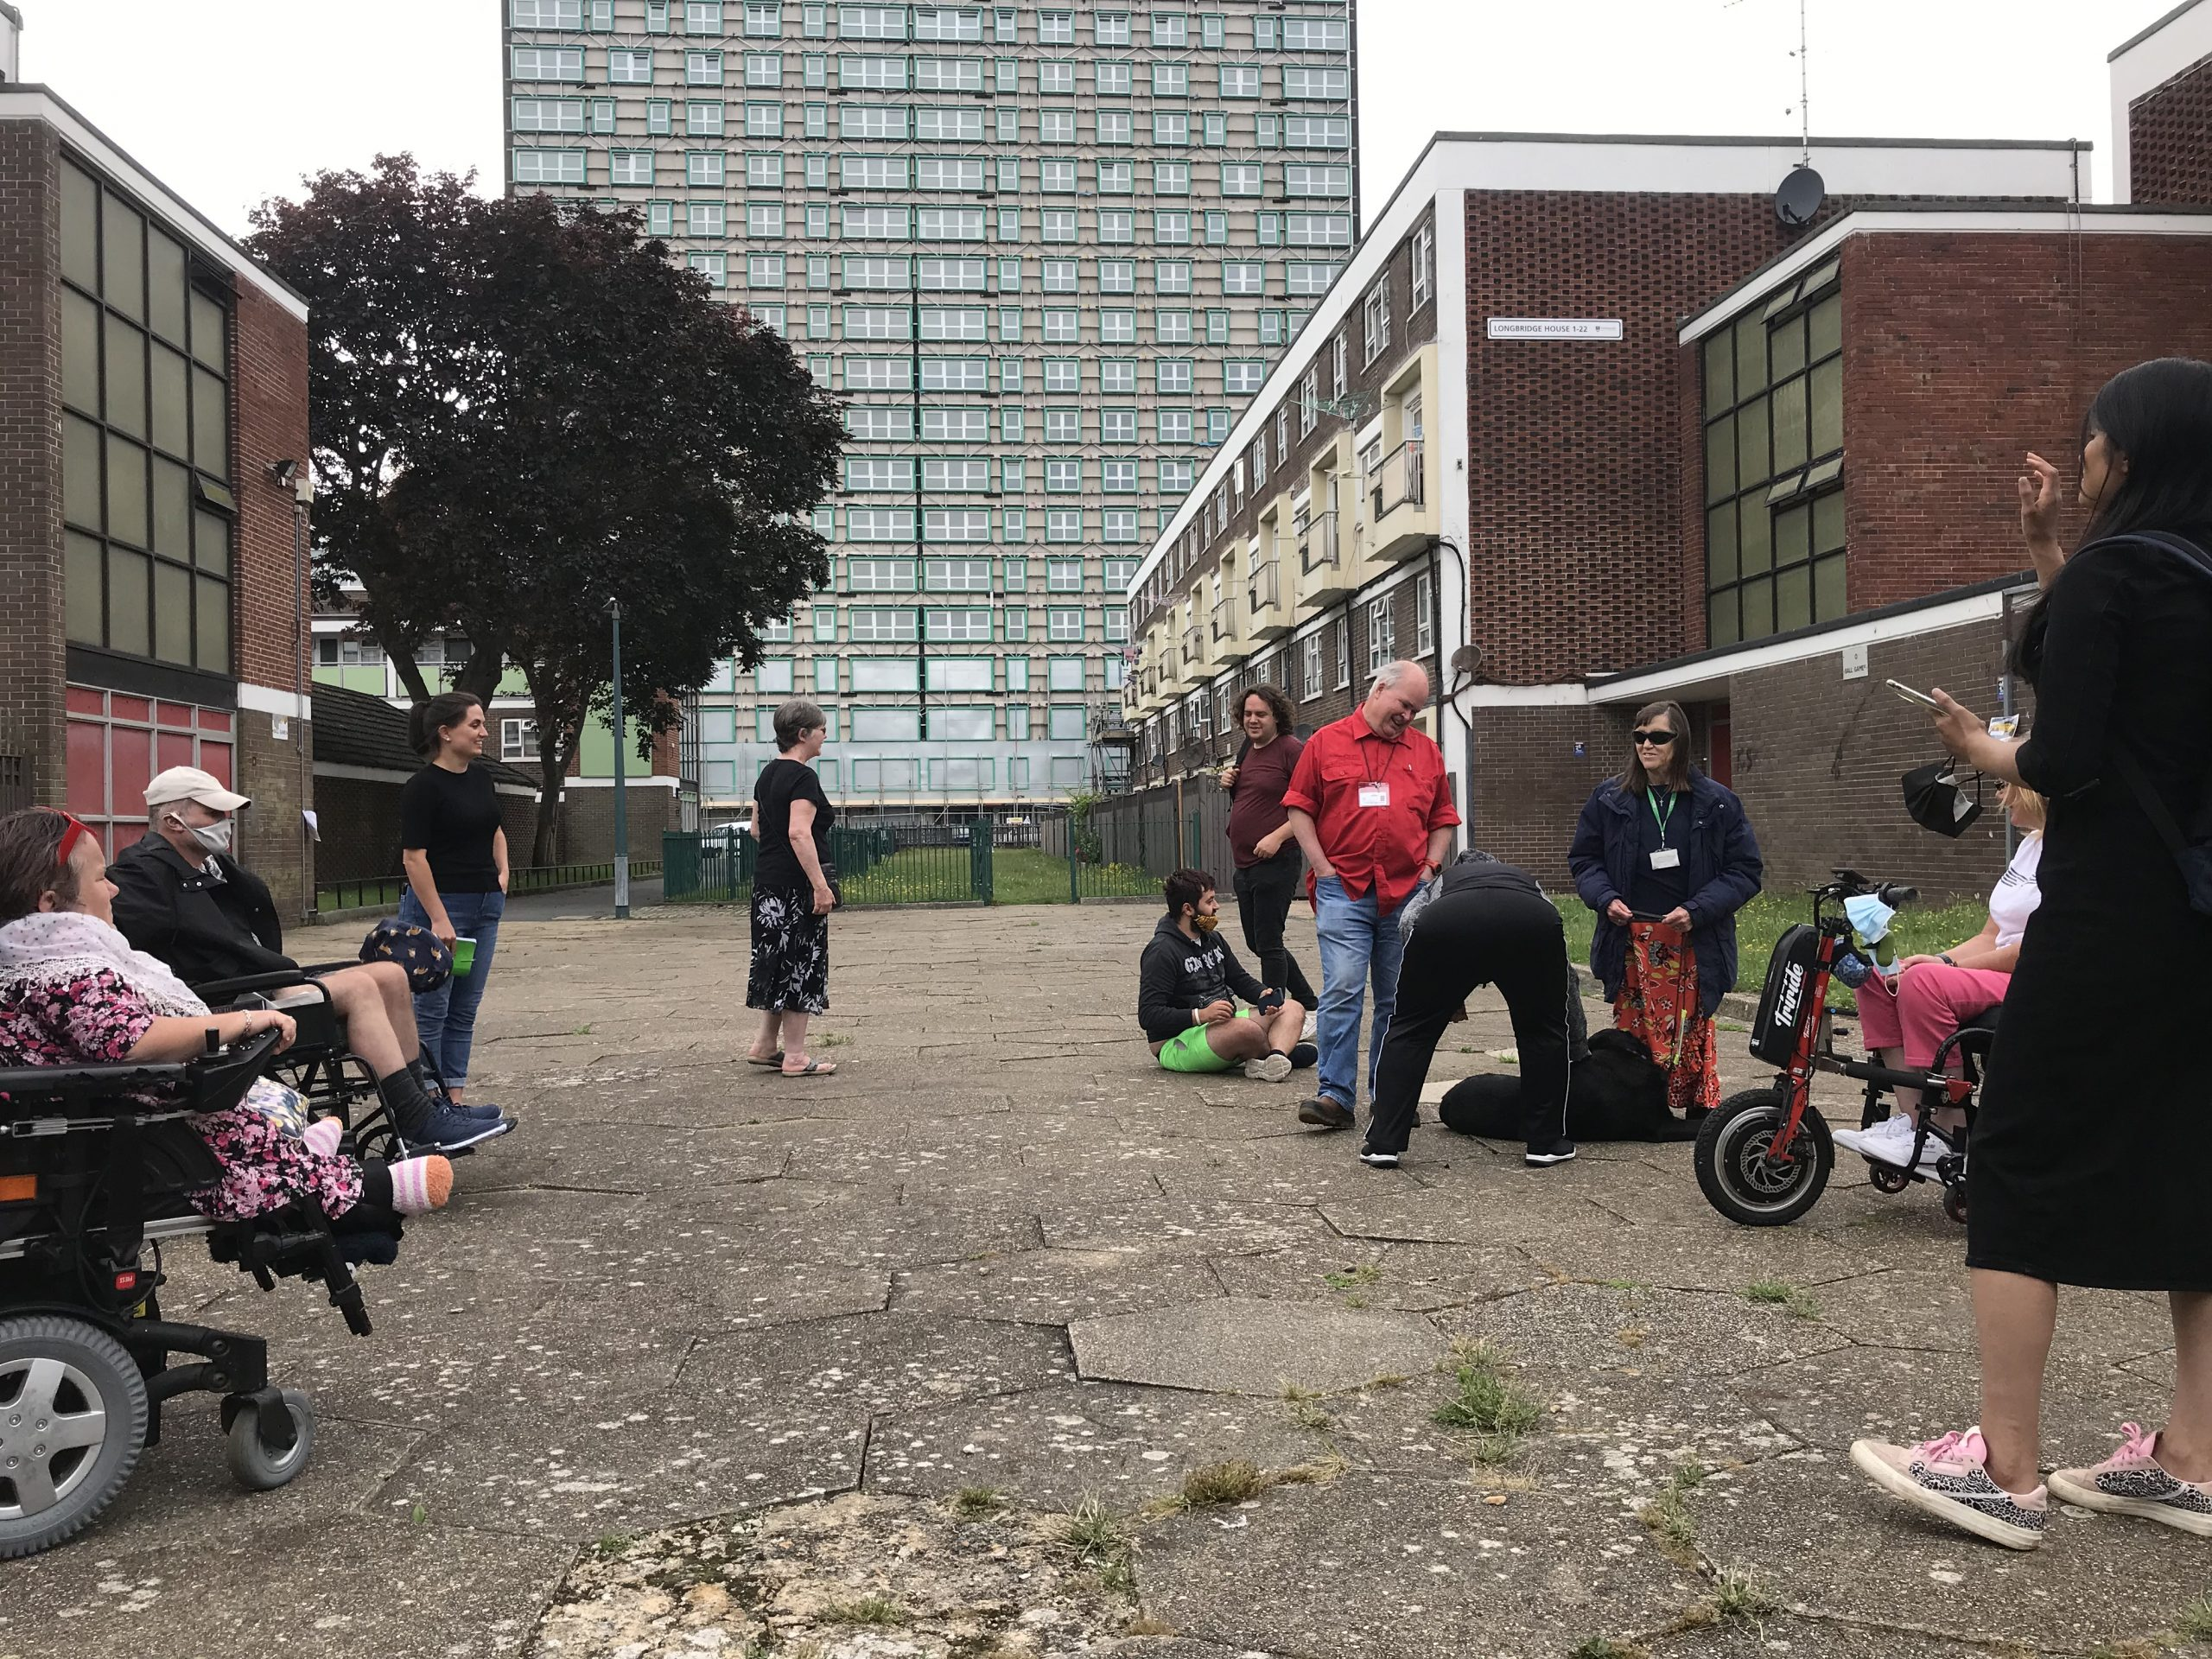 Local people living with disabilities gave the design team from Karakusevic Carson Architects a tour of Somerstown to show the architects how they experience the area.